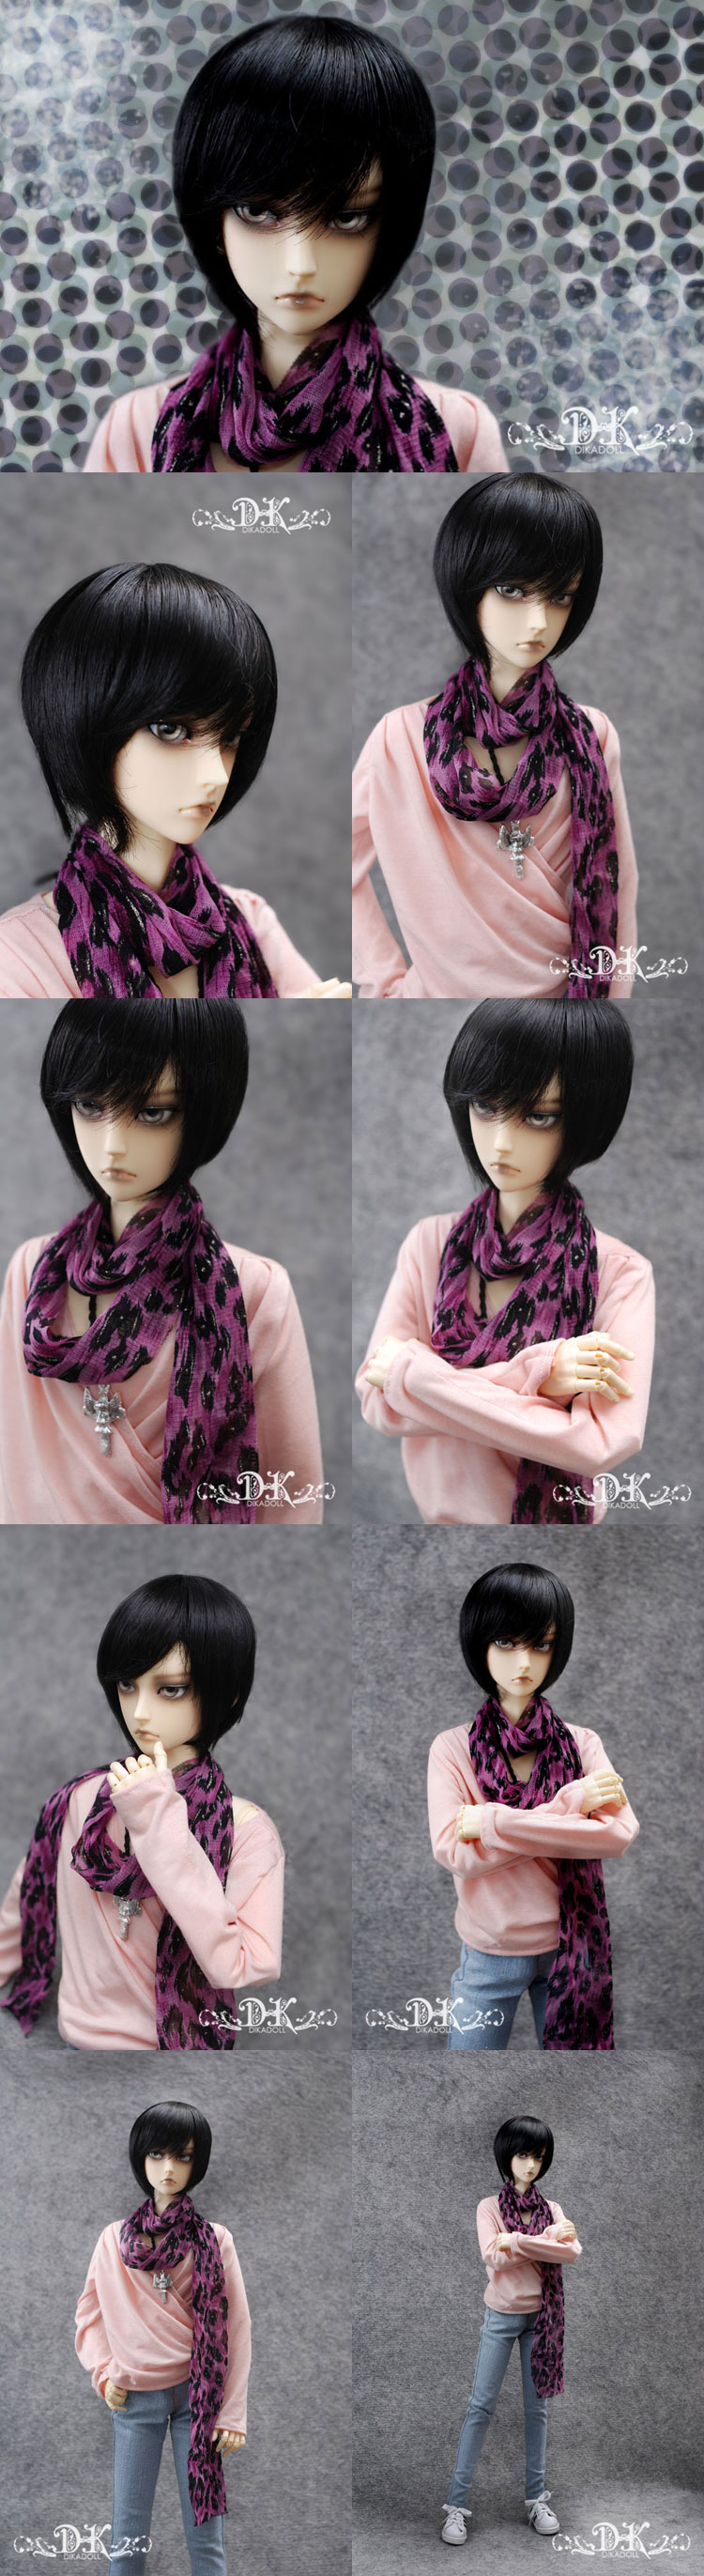 BJD Molin 62cm boy Boll-jointed doll